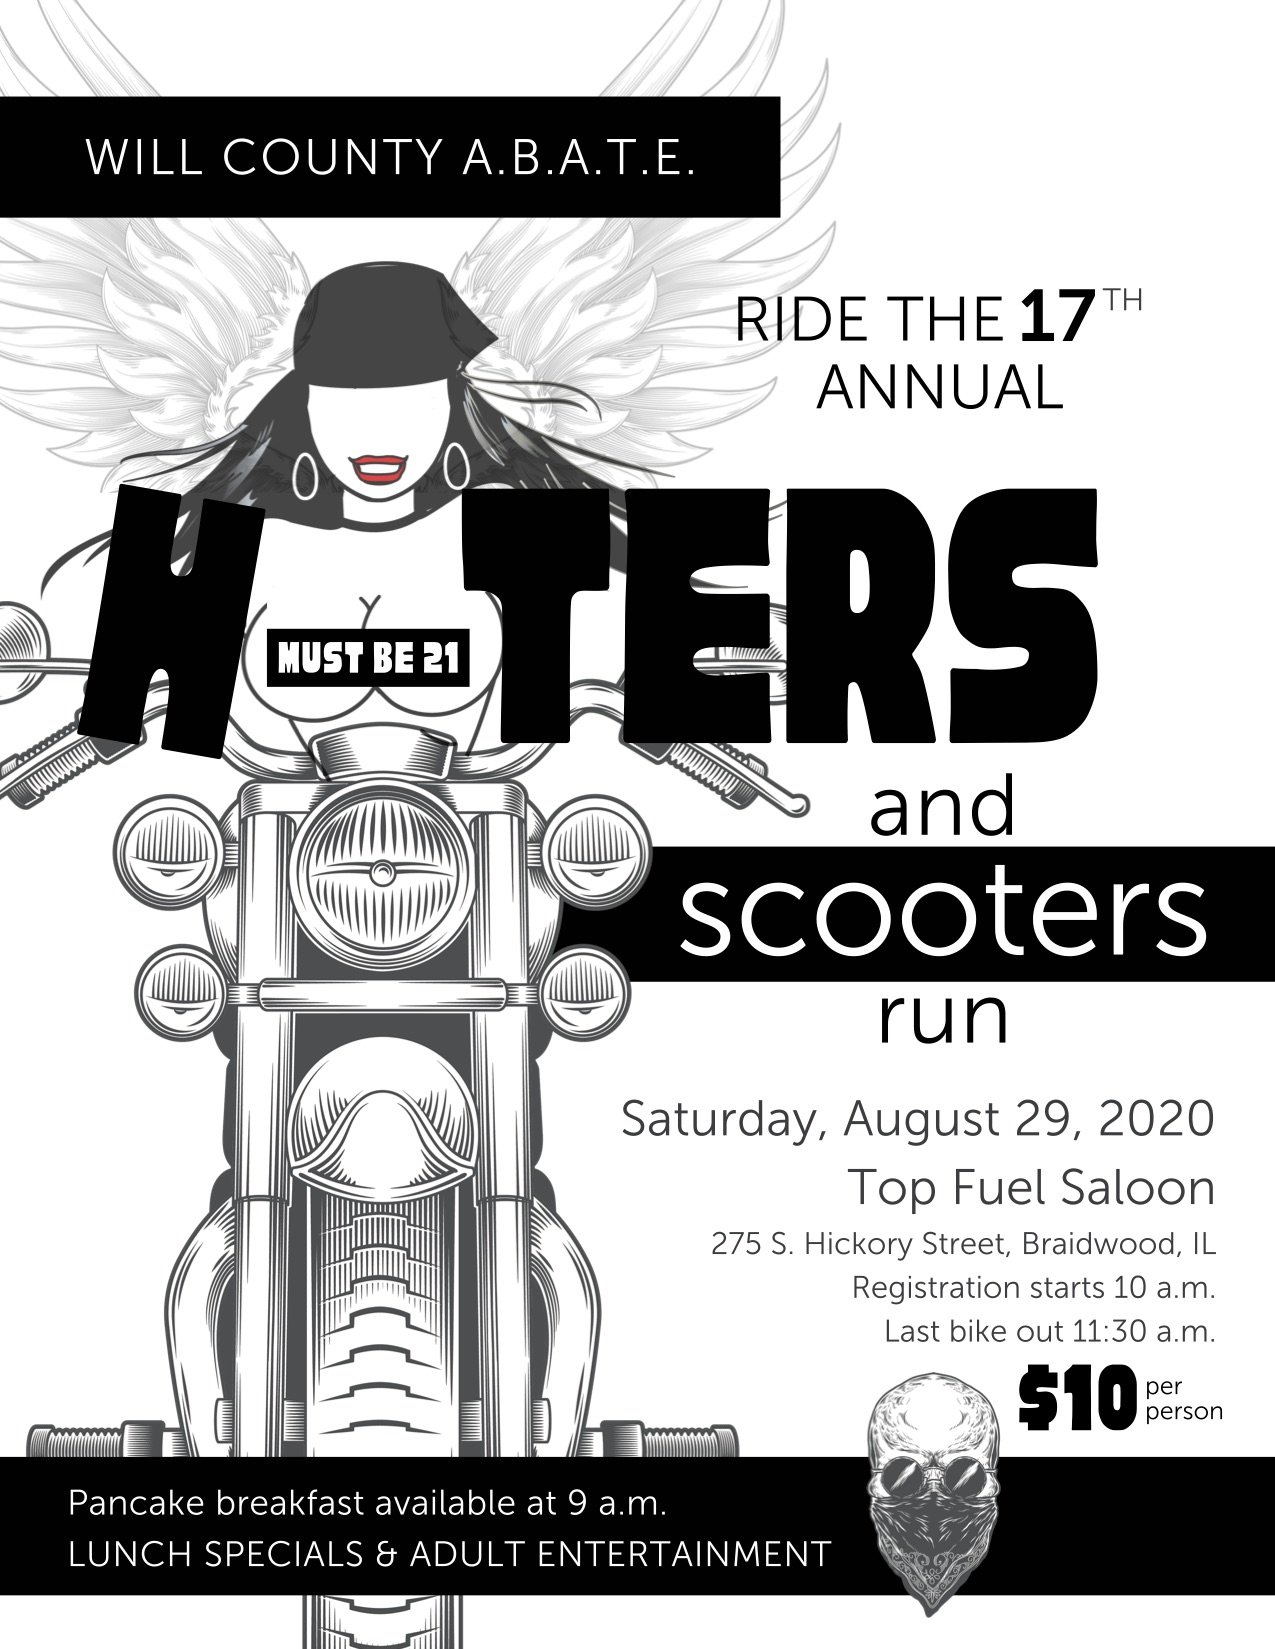 Hooters and Scooter Run